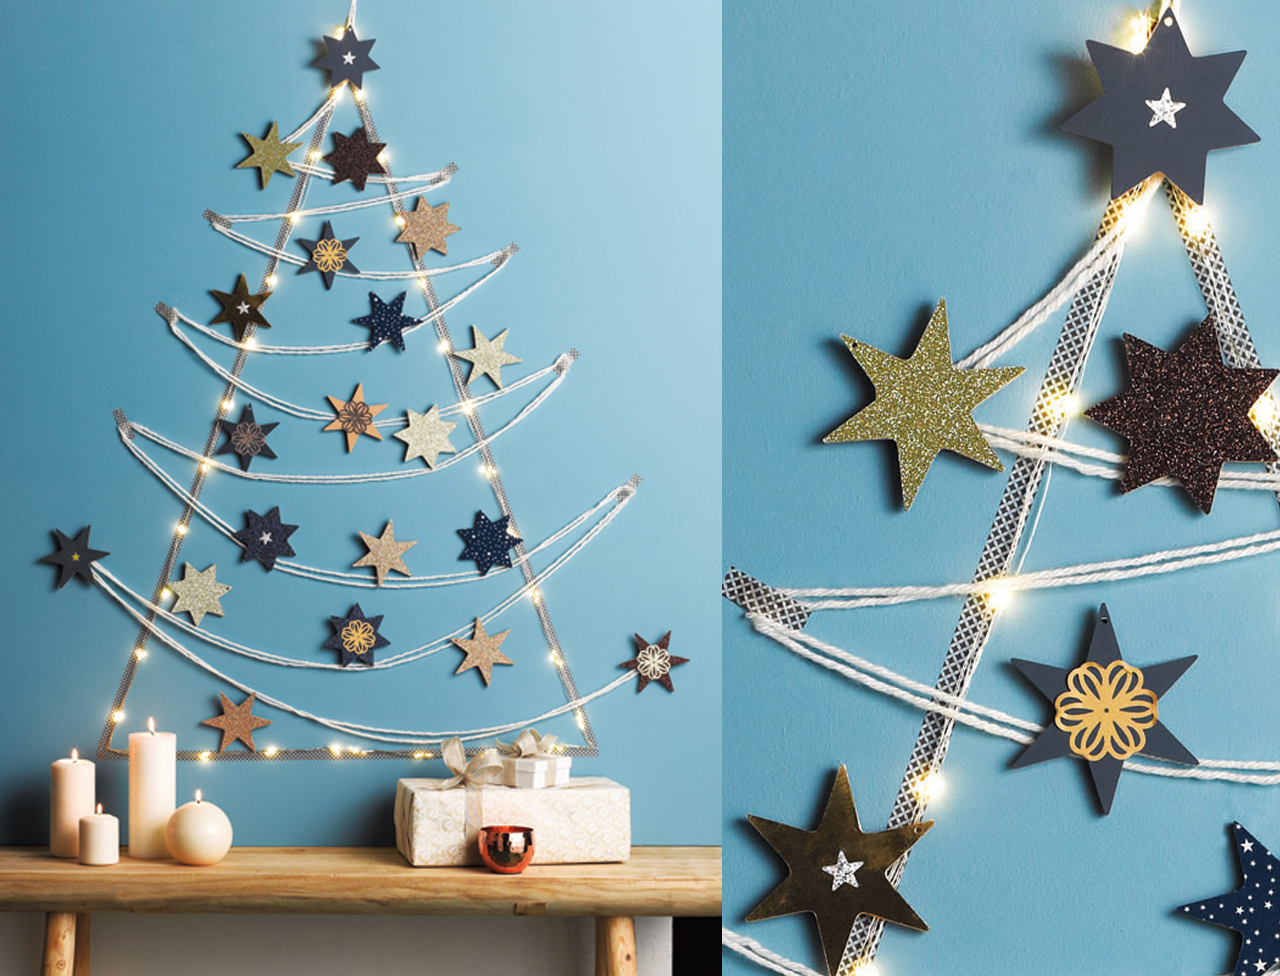 Faire decoration de noel soi meme - Idee decoration noel a faire soi meme ...